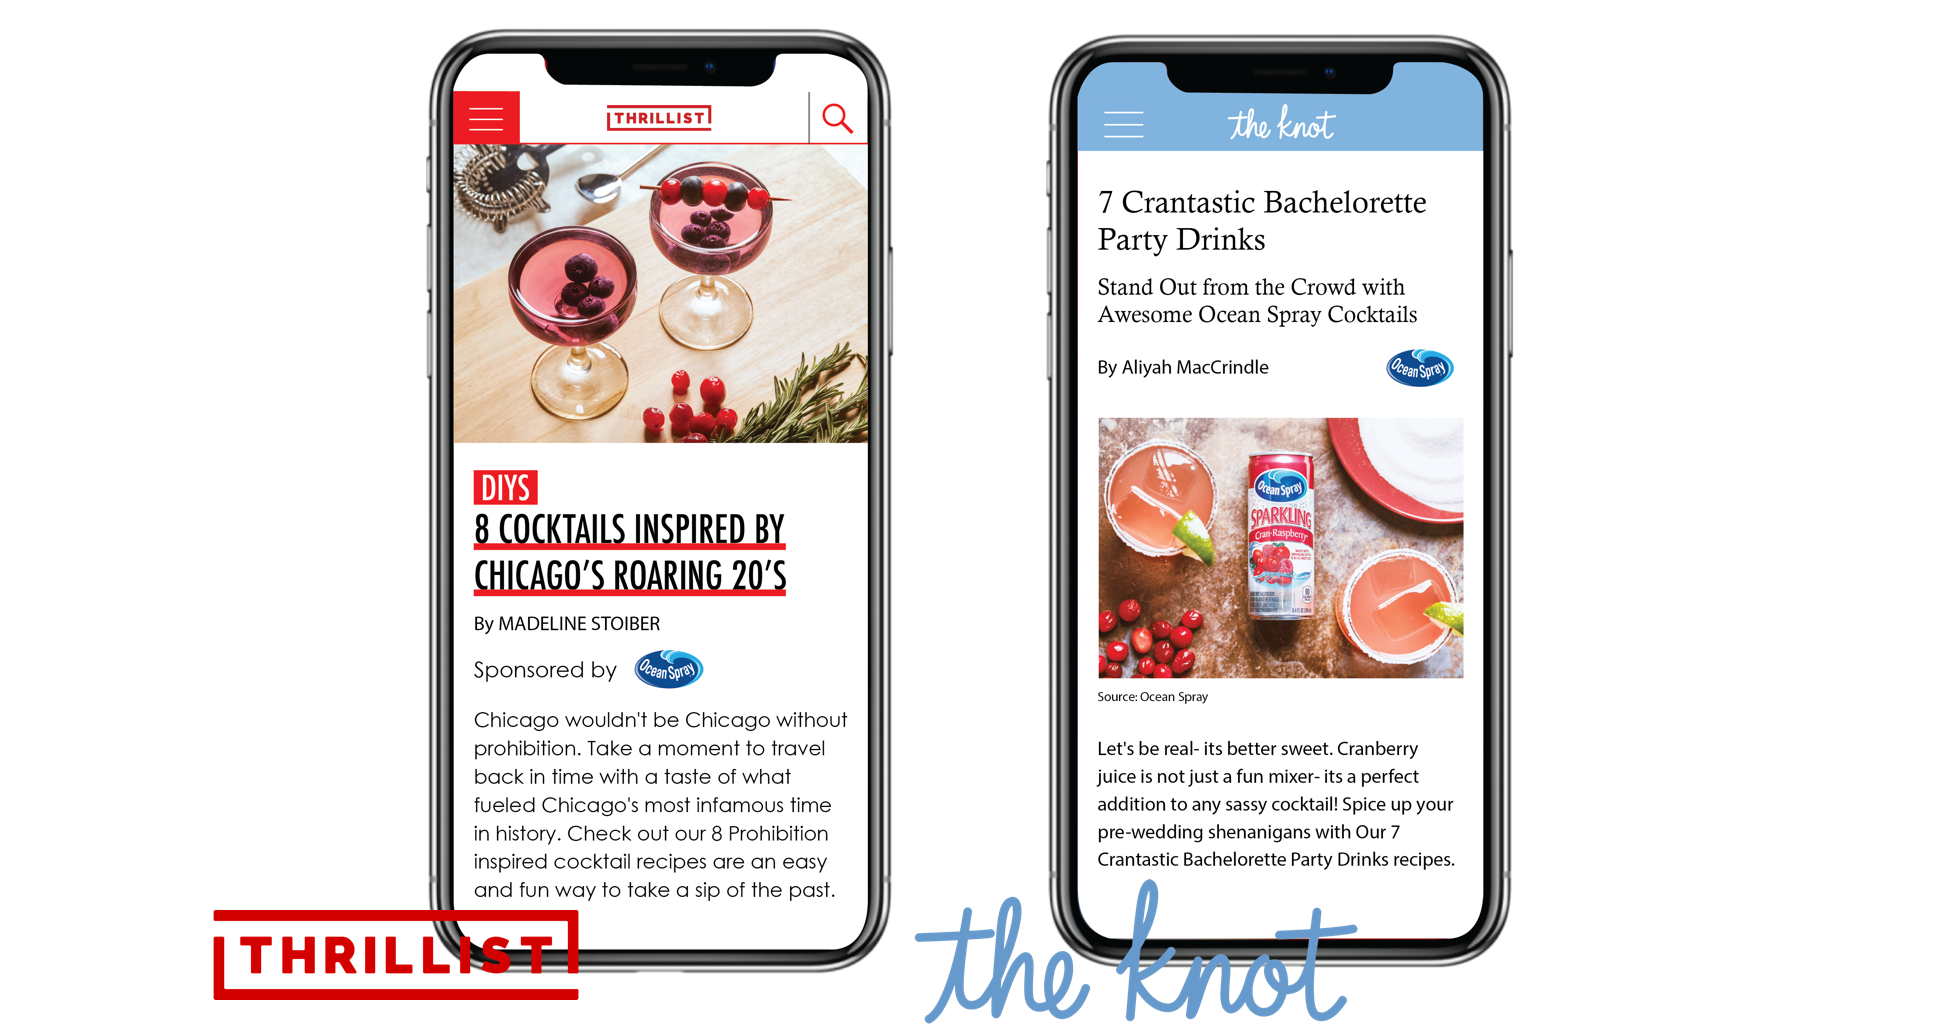 """69% of millennials experience FOMO.  Thrillist , an online media brand known for underground recipes and events, attracts a 60% millennial audience. Ocean Spray shares exclusive """"secret"""" cocktails and speakeasy branded content.—————————————————————————————————————————————————————  The Knot  is the #1 wedding network reaching 80% of U.S. bride with 5.7 million visits  monthly. Ocean Spray pitches year-round """"Beauty + Wellness"""" ideas like: cranberry  bachelorette party drinks, wedding decor, mocktails and more."""